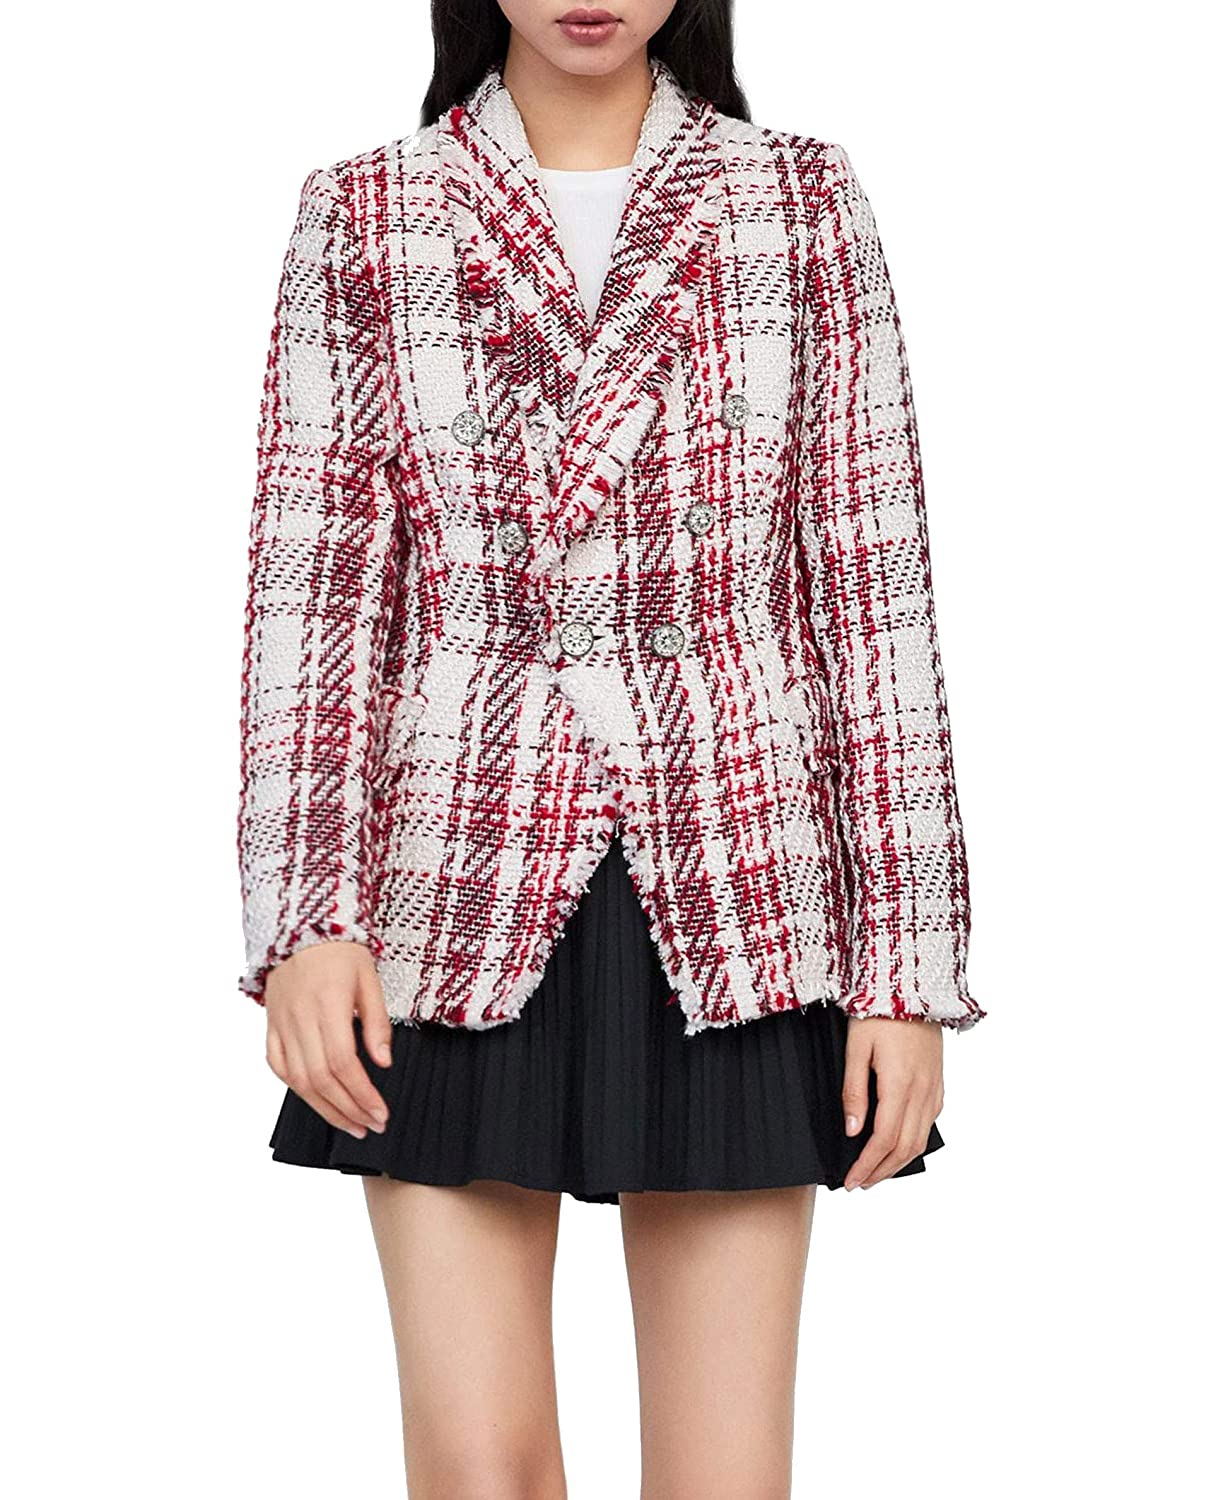 6f38c513 Zara Women's Tweed Jacket with gem Button 2135/614 Off-White: Amazon.co.uk:  Clothing